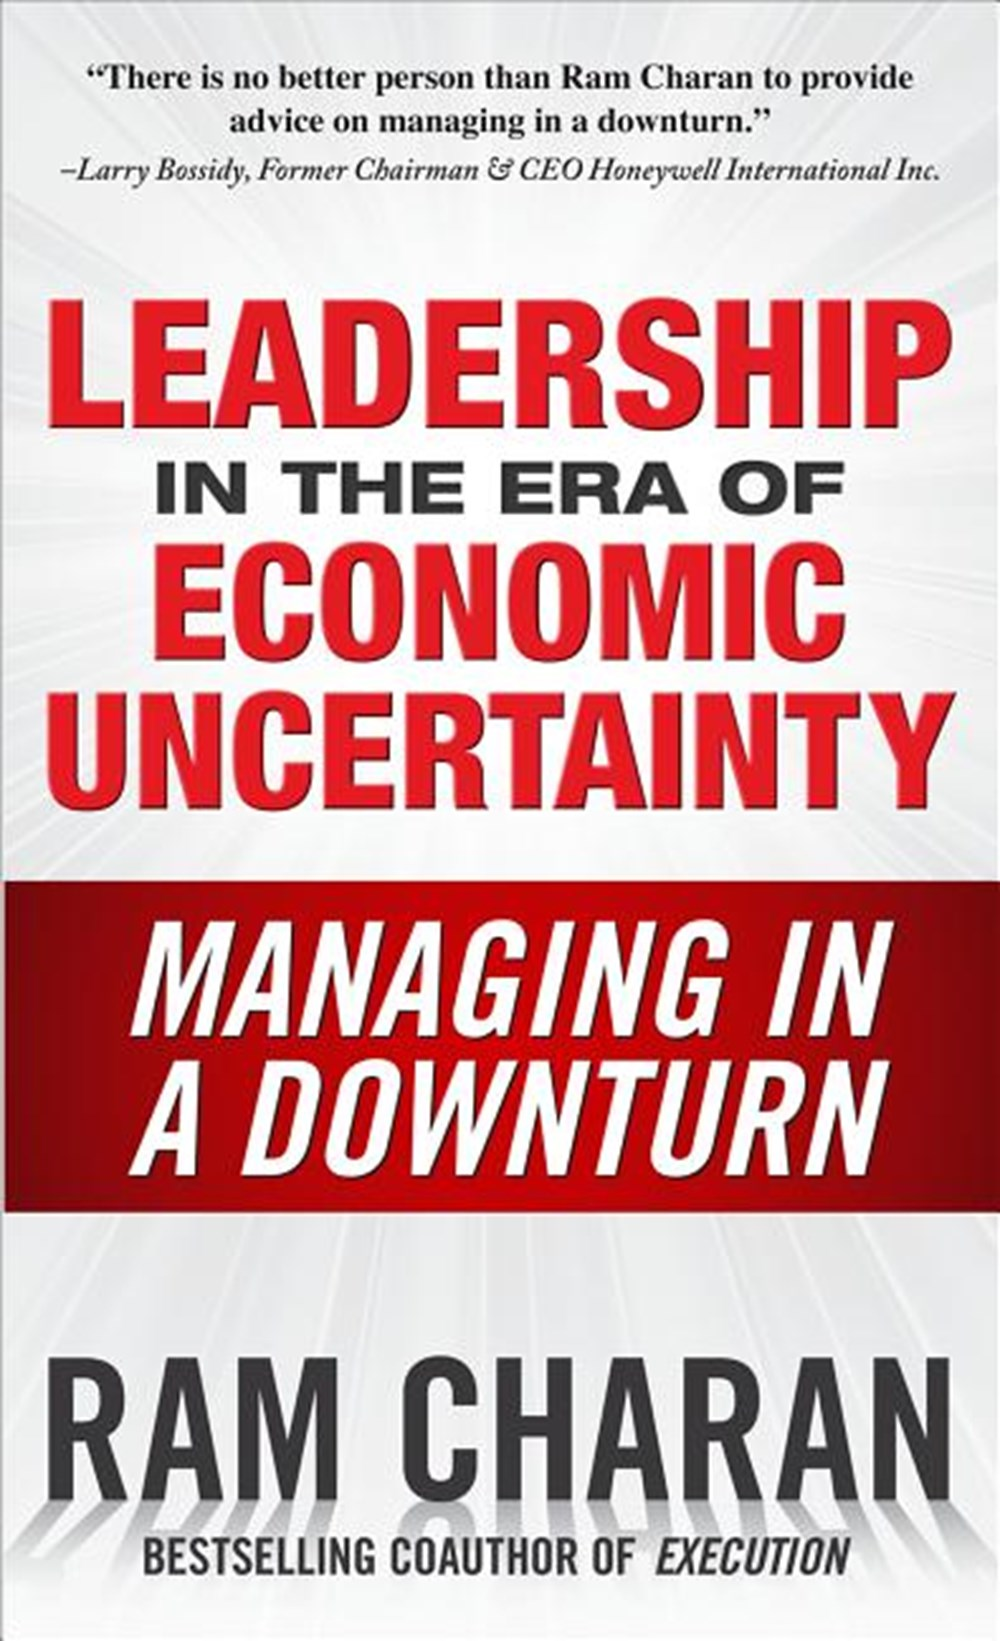 Leadership in the Era of Economic Uncertainty Managing in a Downturn